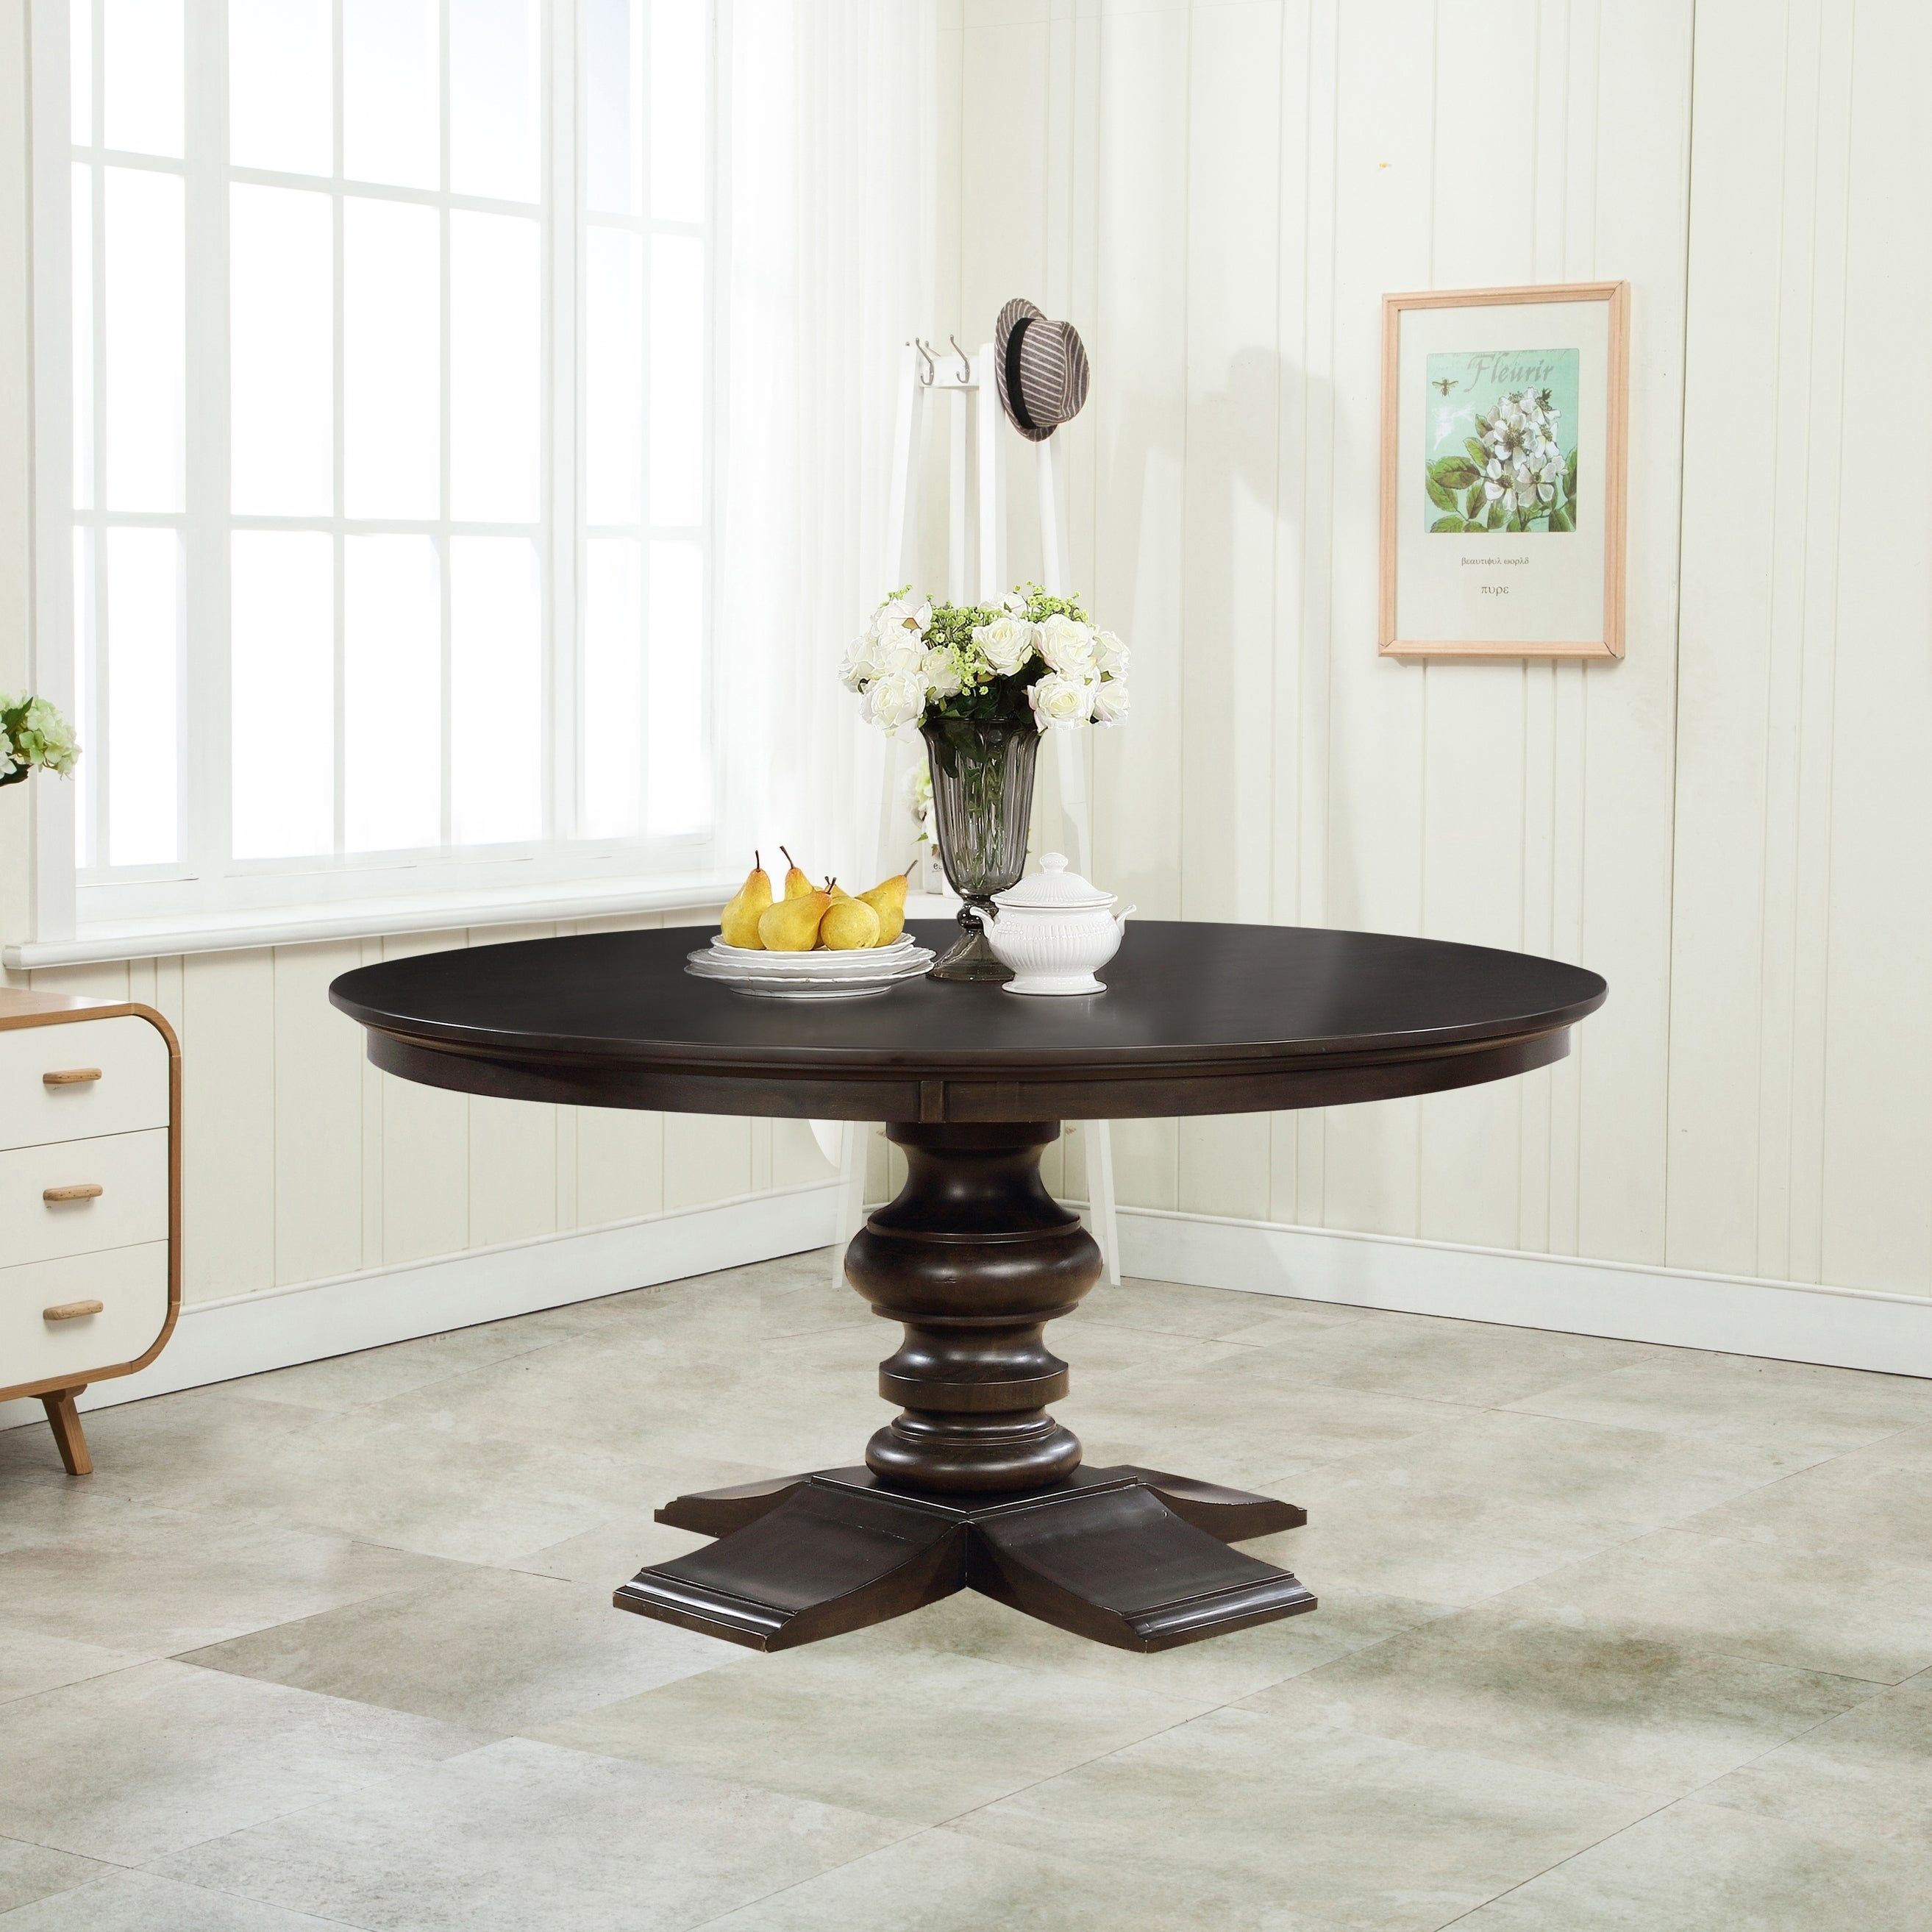 Best Quality Dining Room Furniture: Best Quality Furniture Round Cappuccino Dining Table